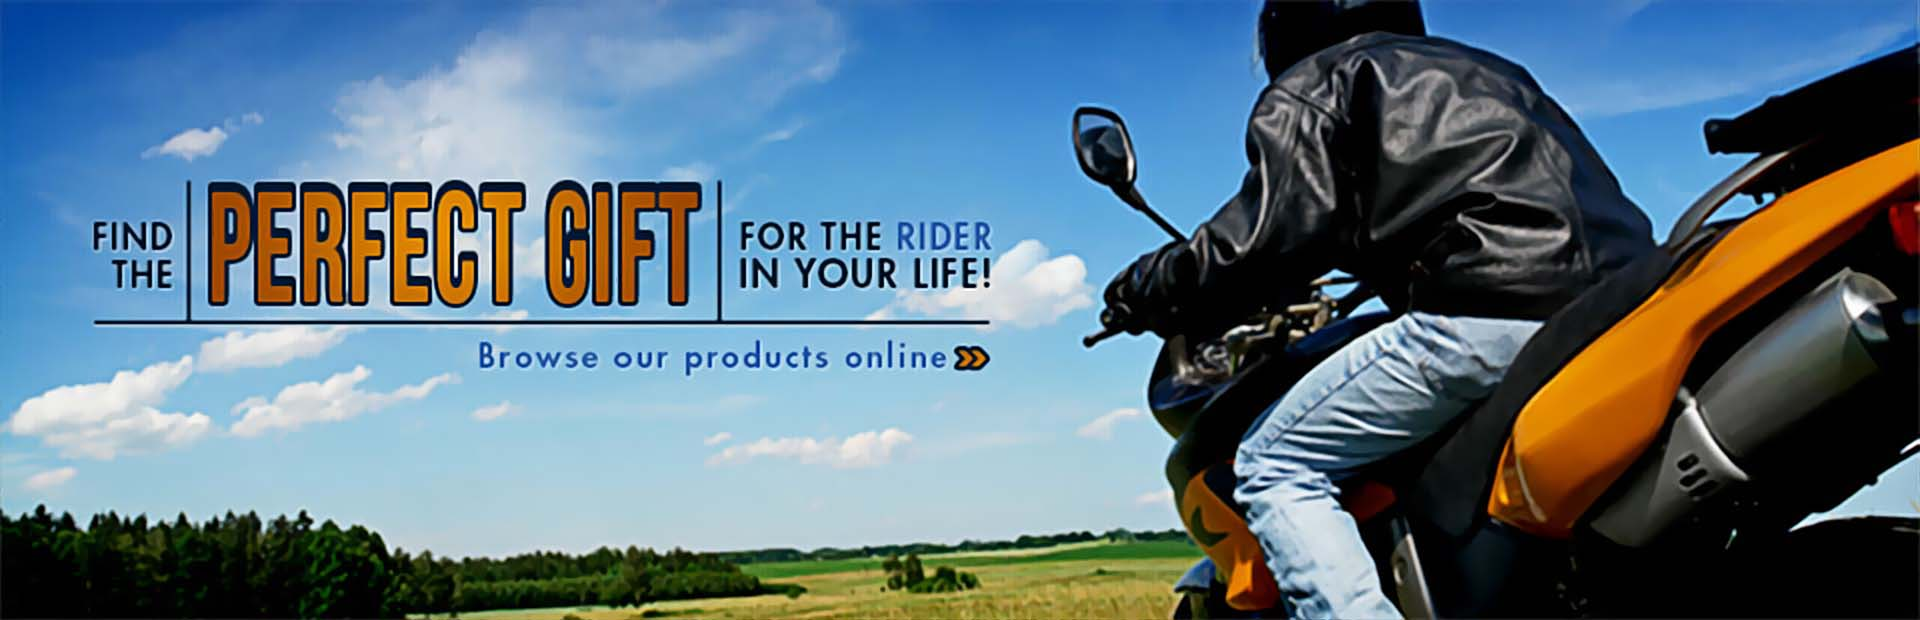 Click here to find the perfect gift for the rider in your life.